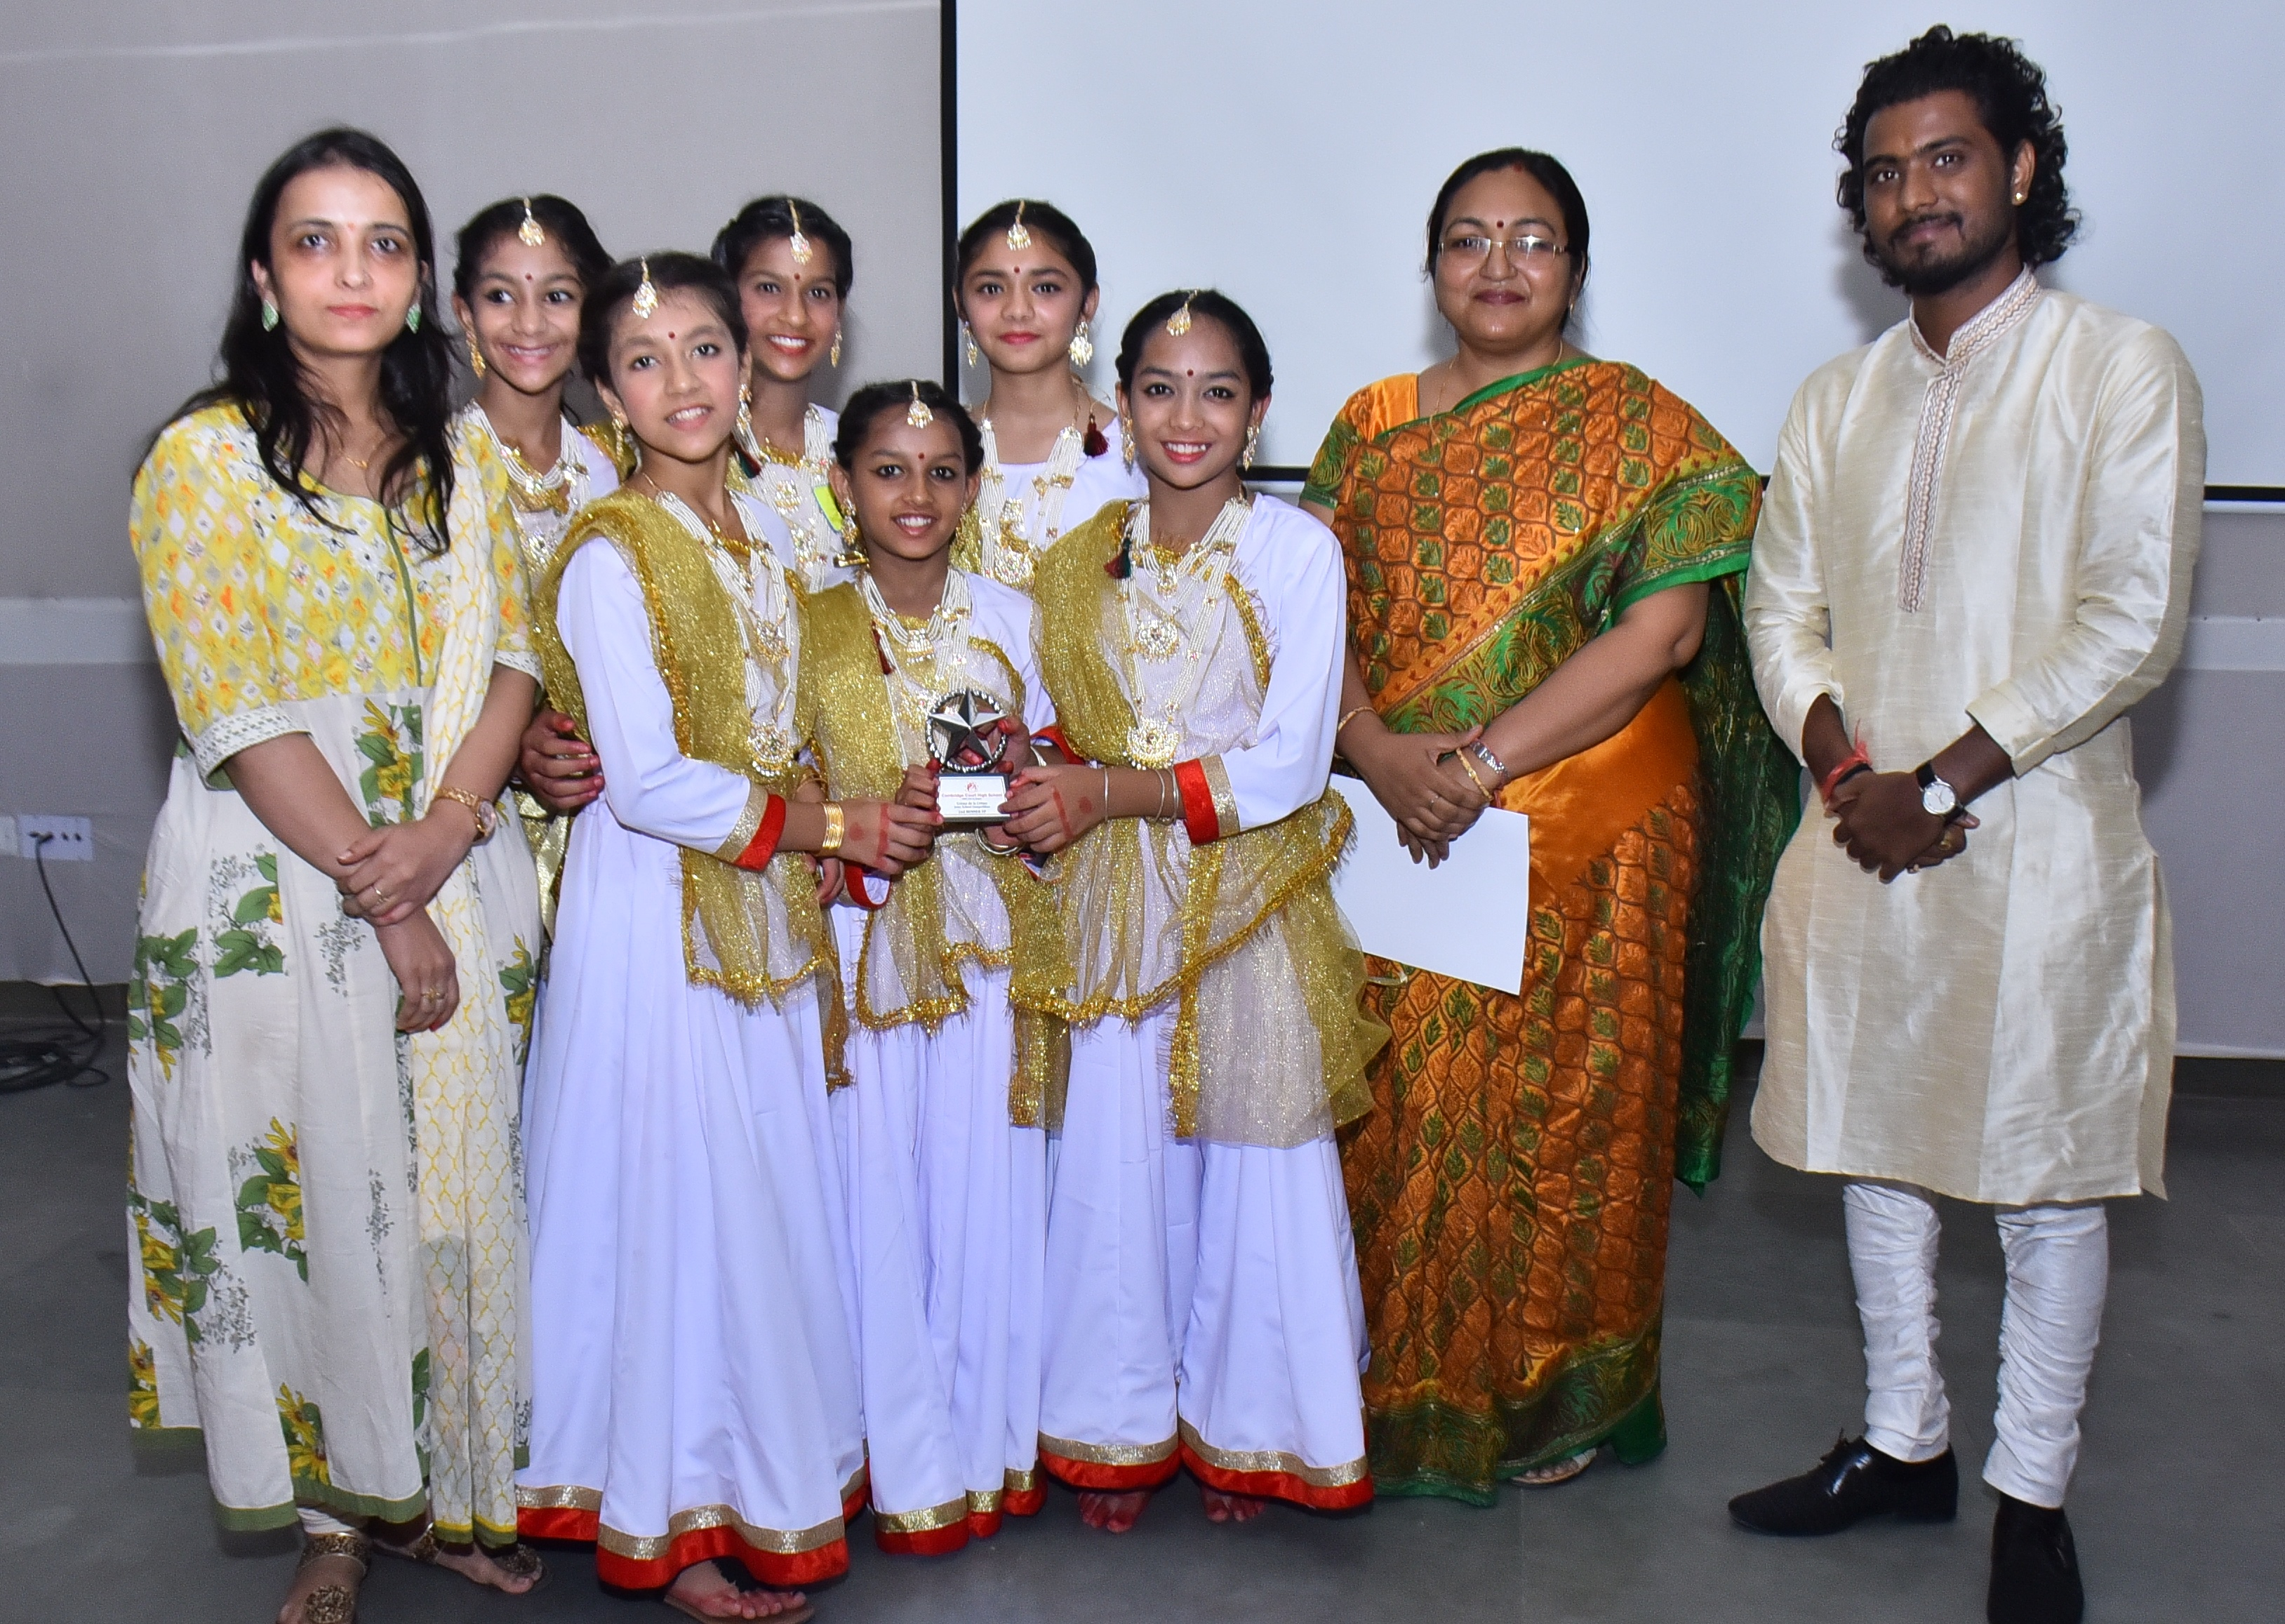 Victory for Sanskar Dance Champs